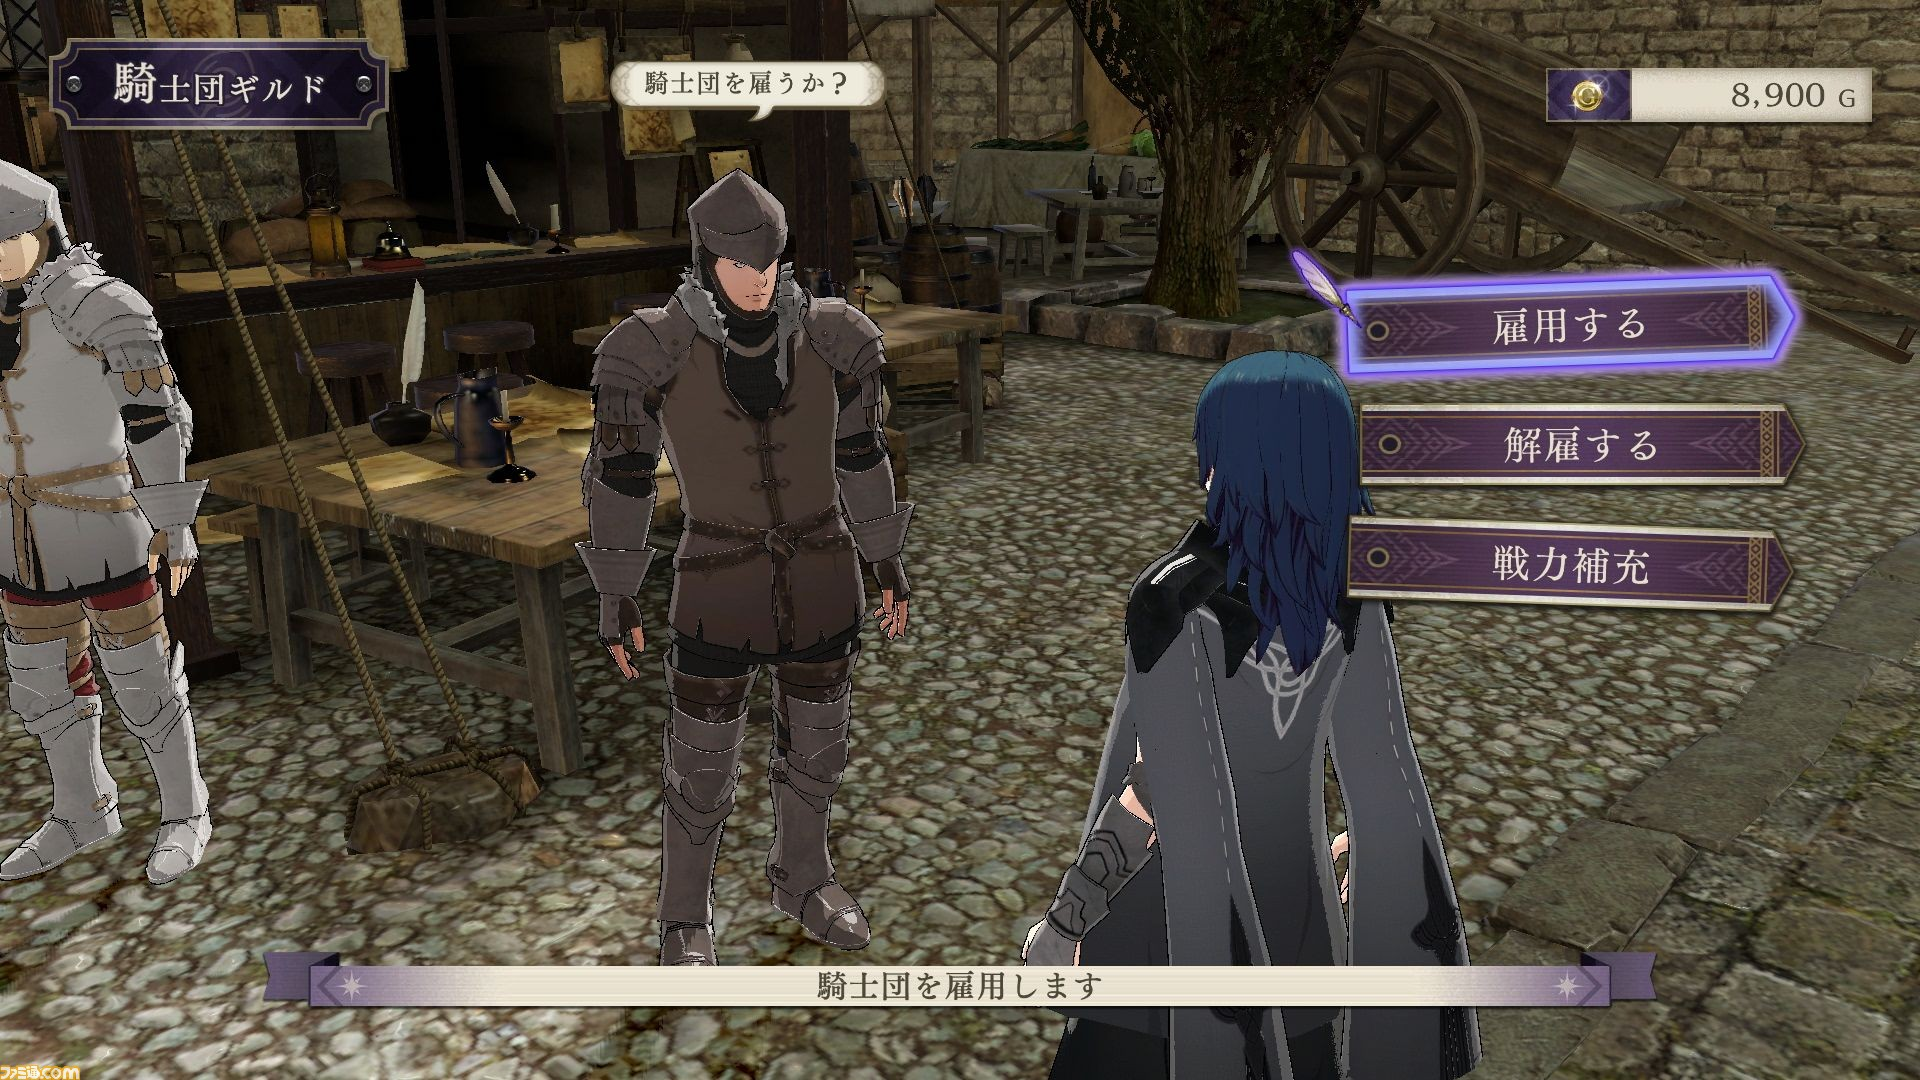 https://www.perfectly-nintendo.com/wp-content/uploads/sites/1/nggallery/fire-emblem-three-houses-15-05-2019/20.jpg